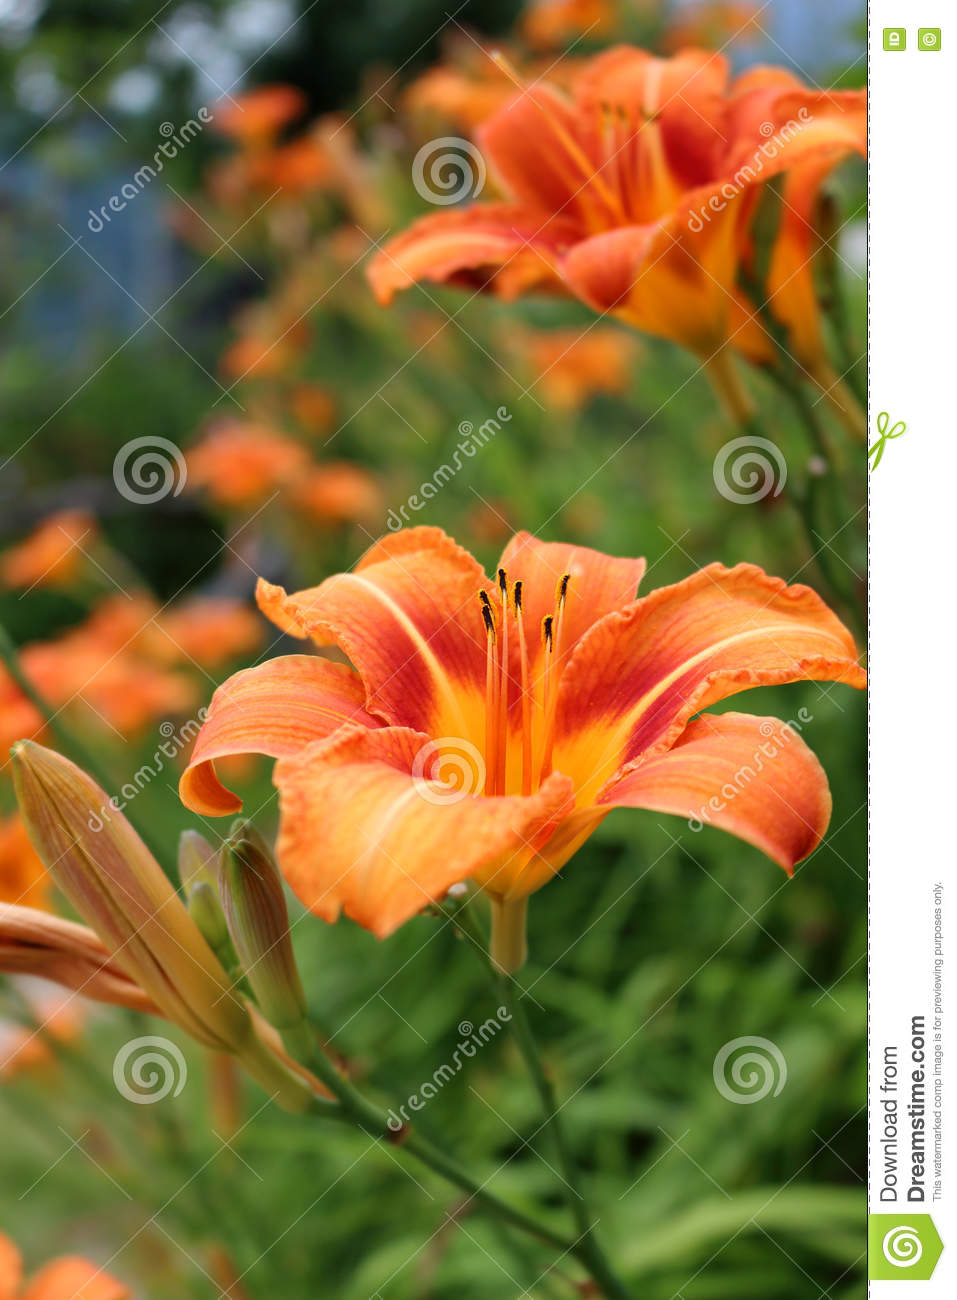 Wild orange tiger lily flowers lilium bulbiferum stock photo download wild orange tiger lily flowers lilium bulbiferum stock photo image of mountains izmirmasajfo